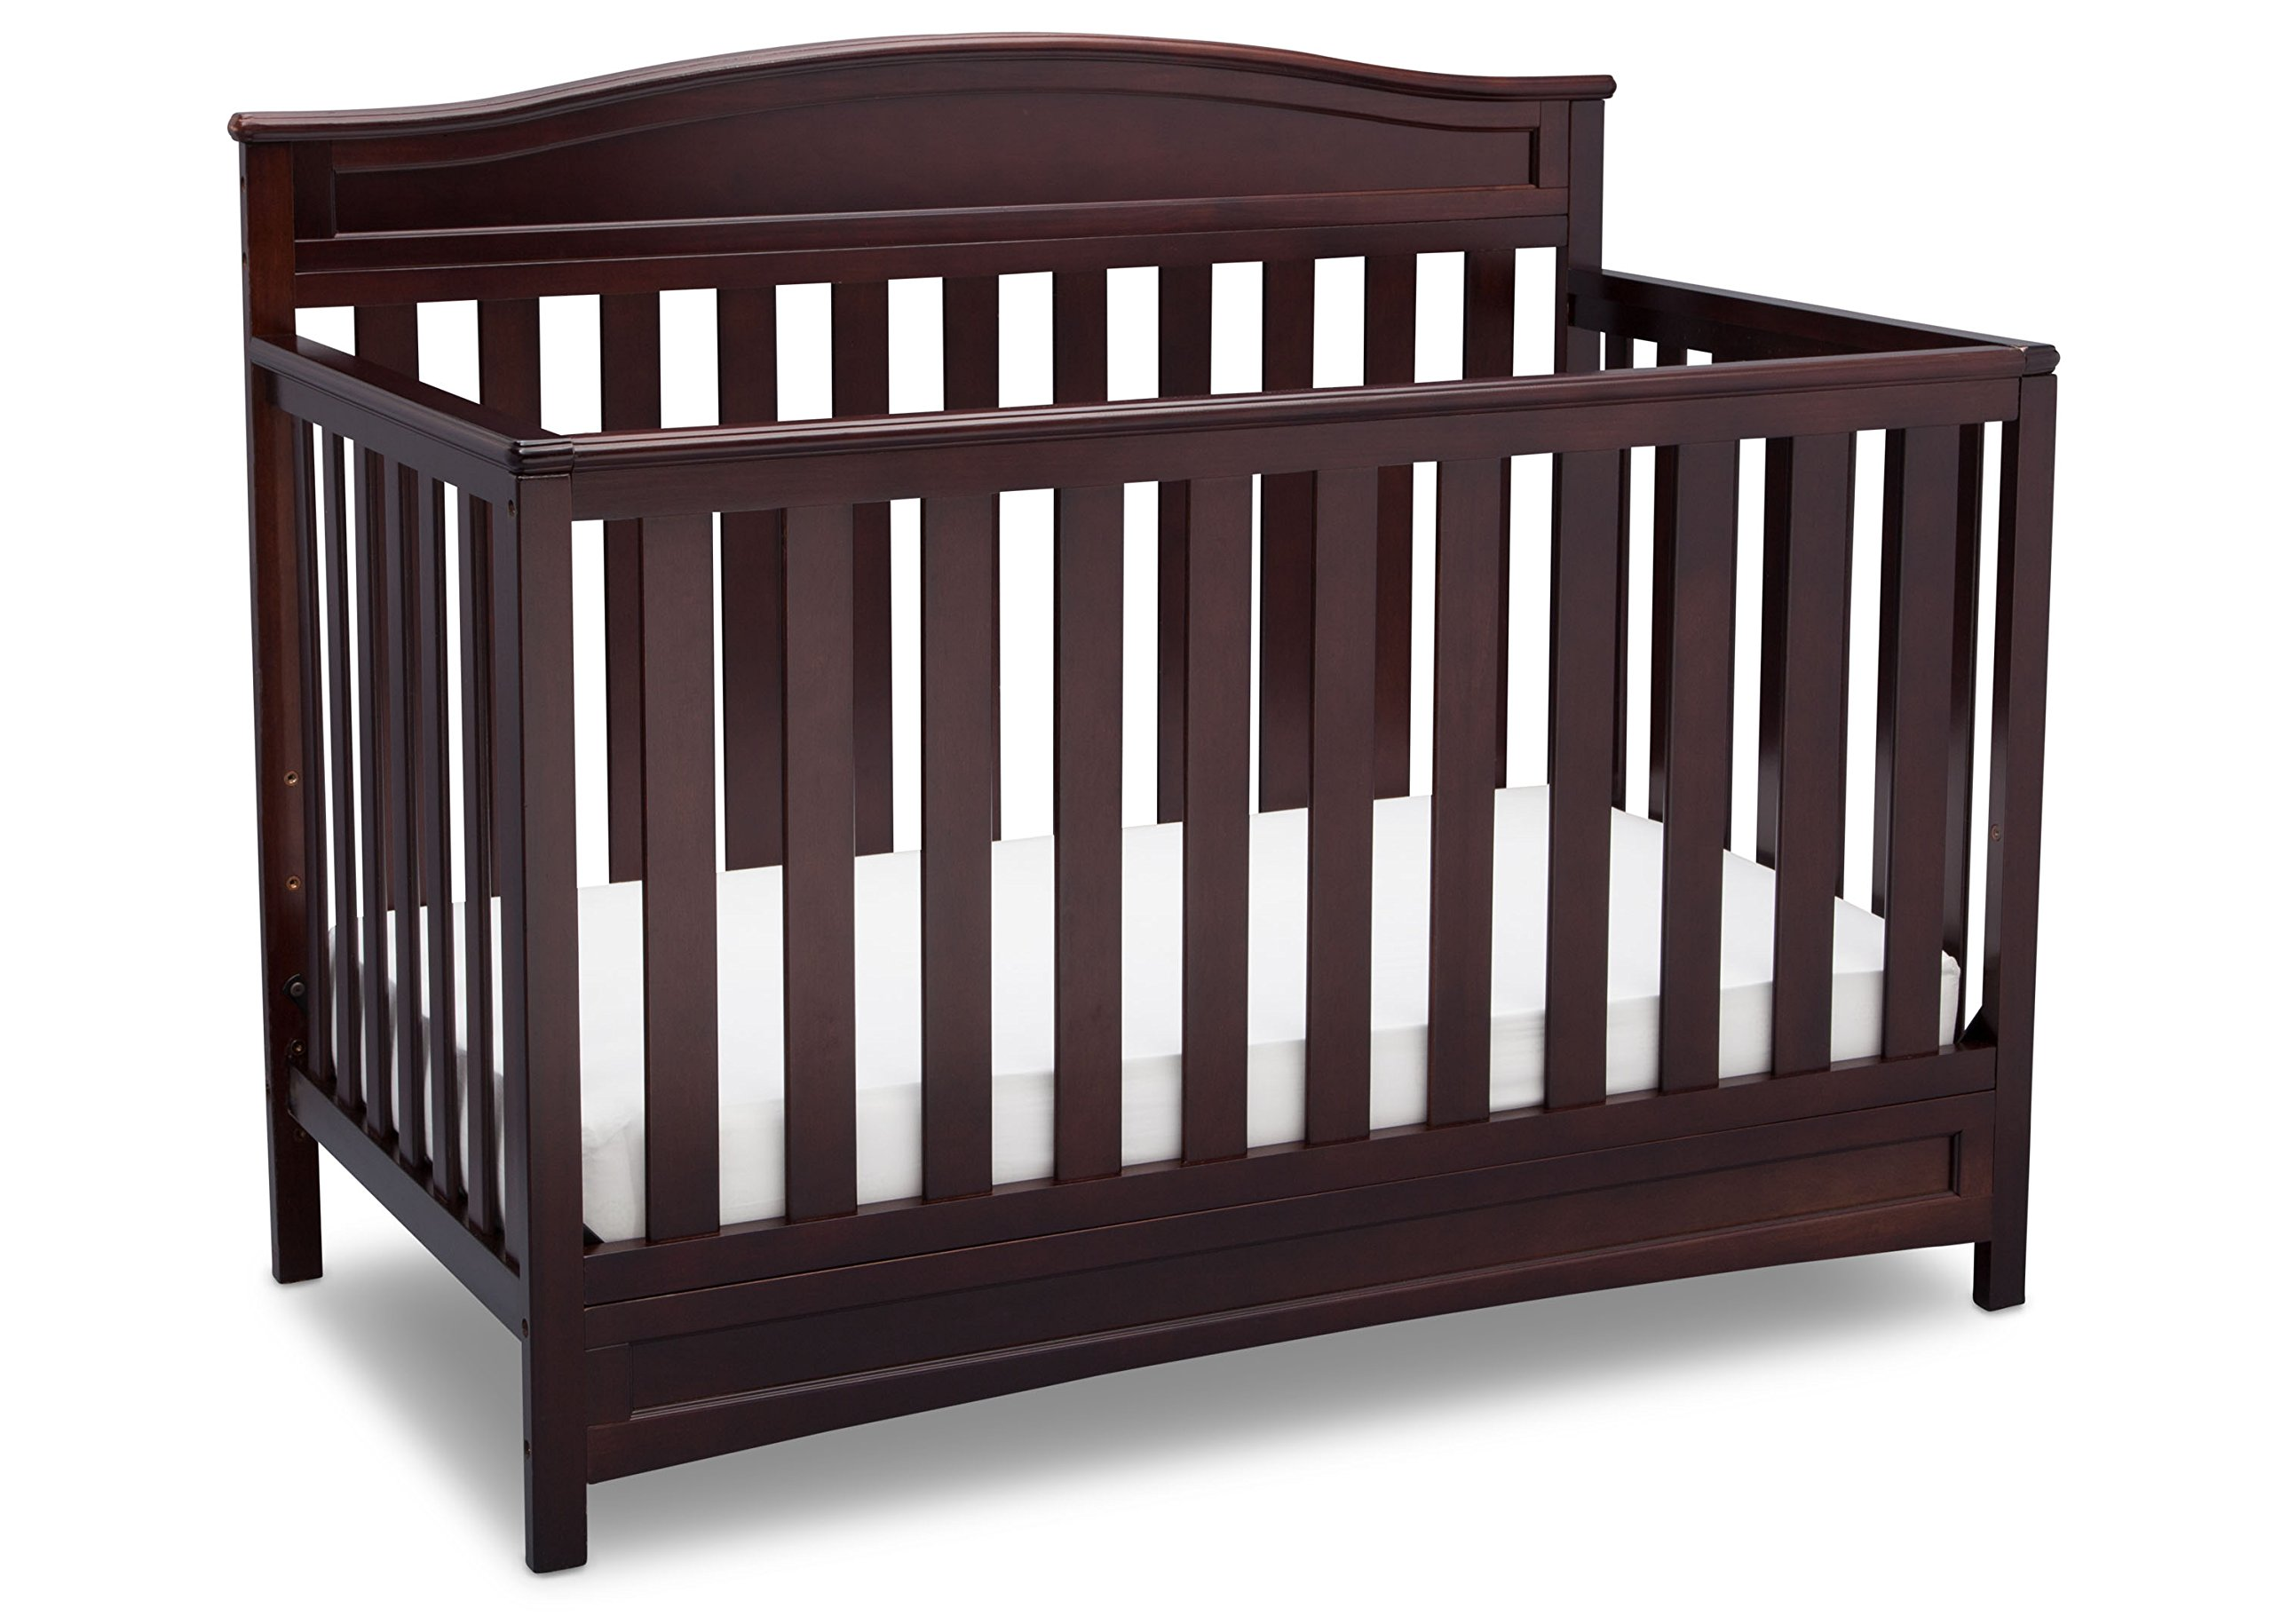 Delta Children Emery 4-in-1 Crib, Dark Chocolate by Delta Children